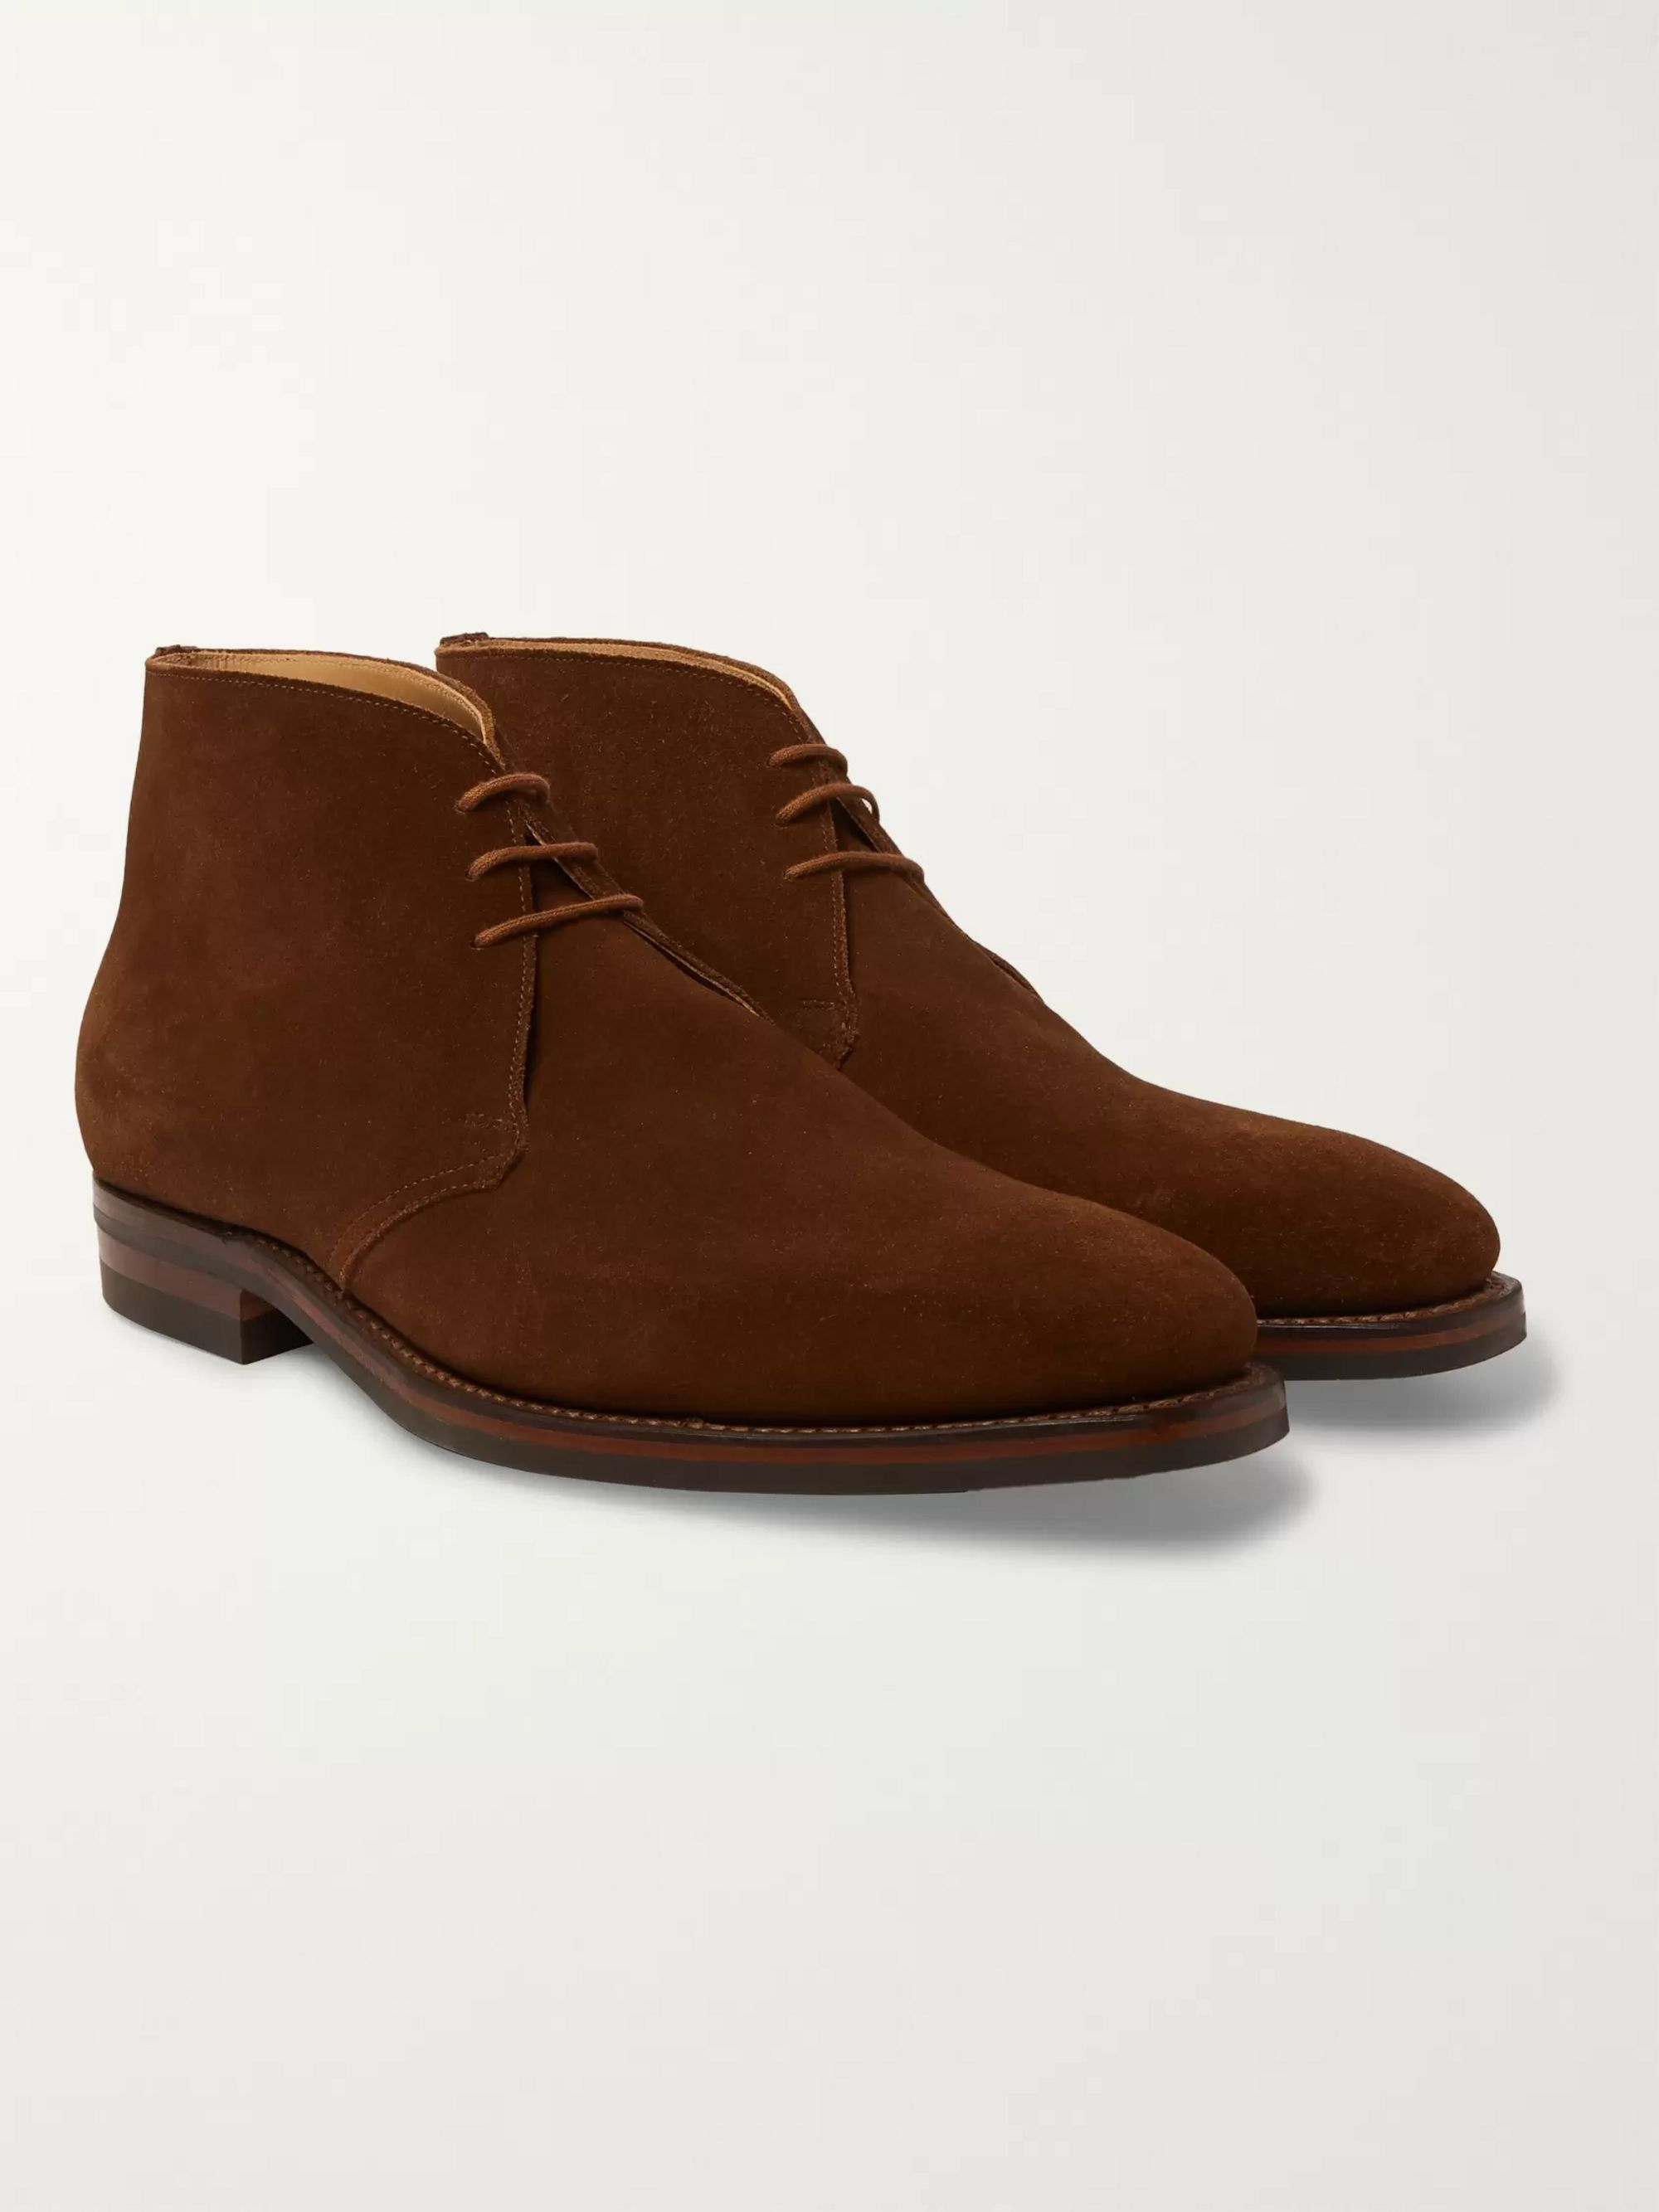 Suede Chukka Boots by James Purdey & Sons